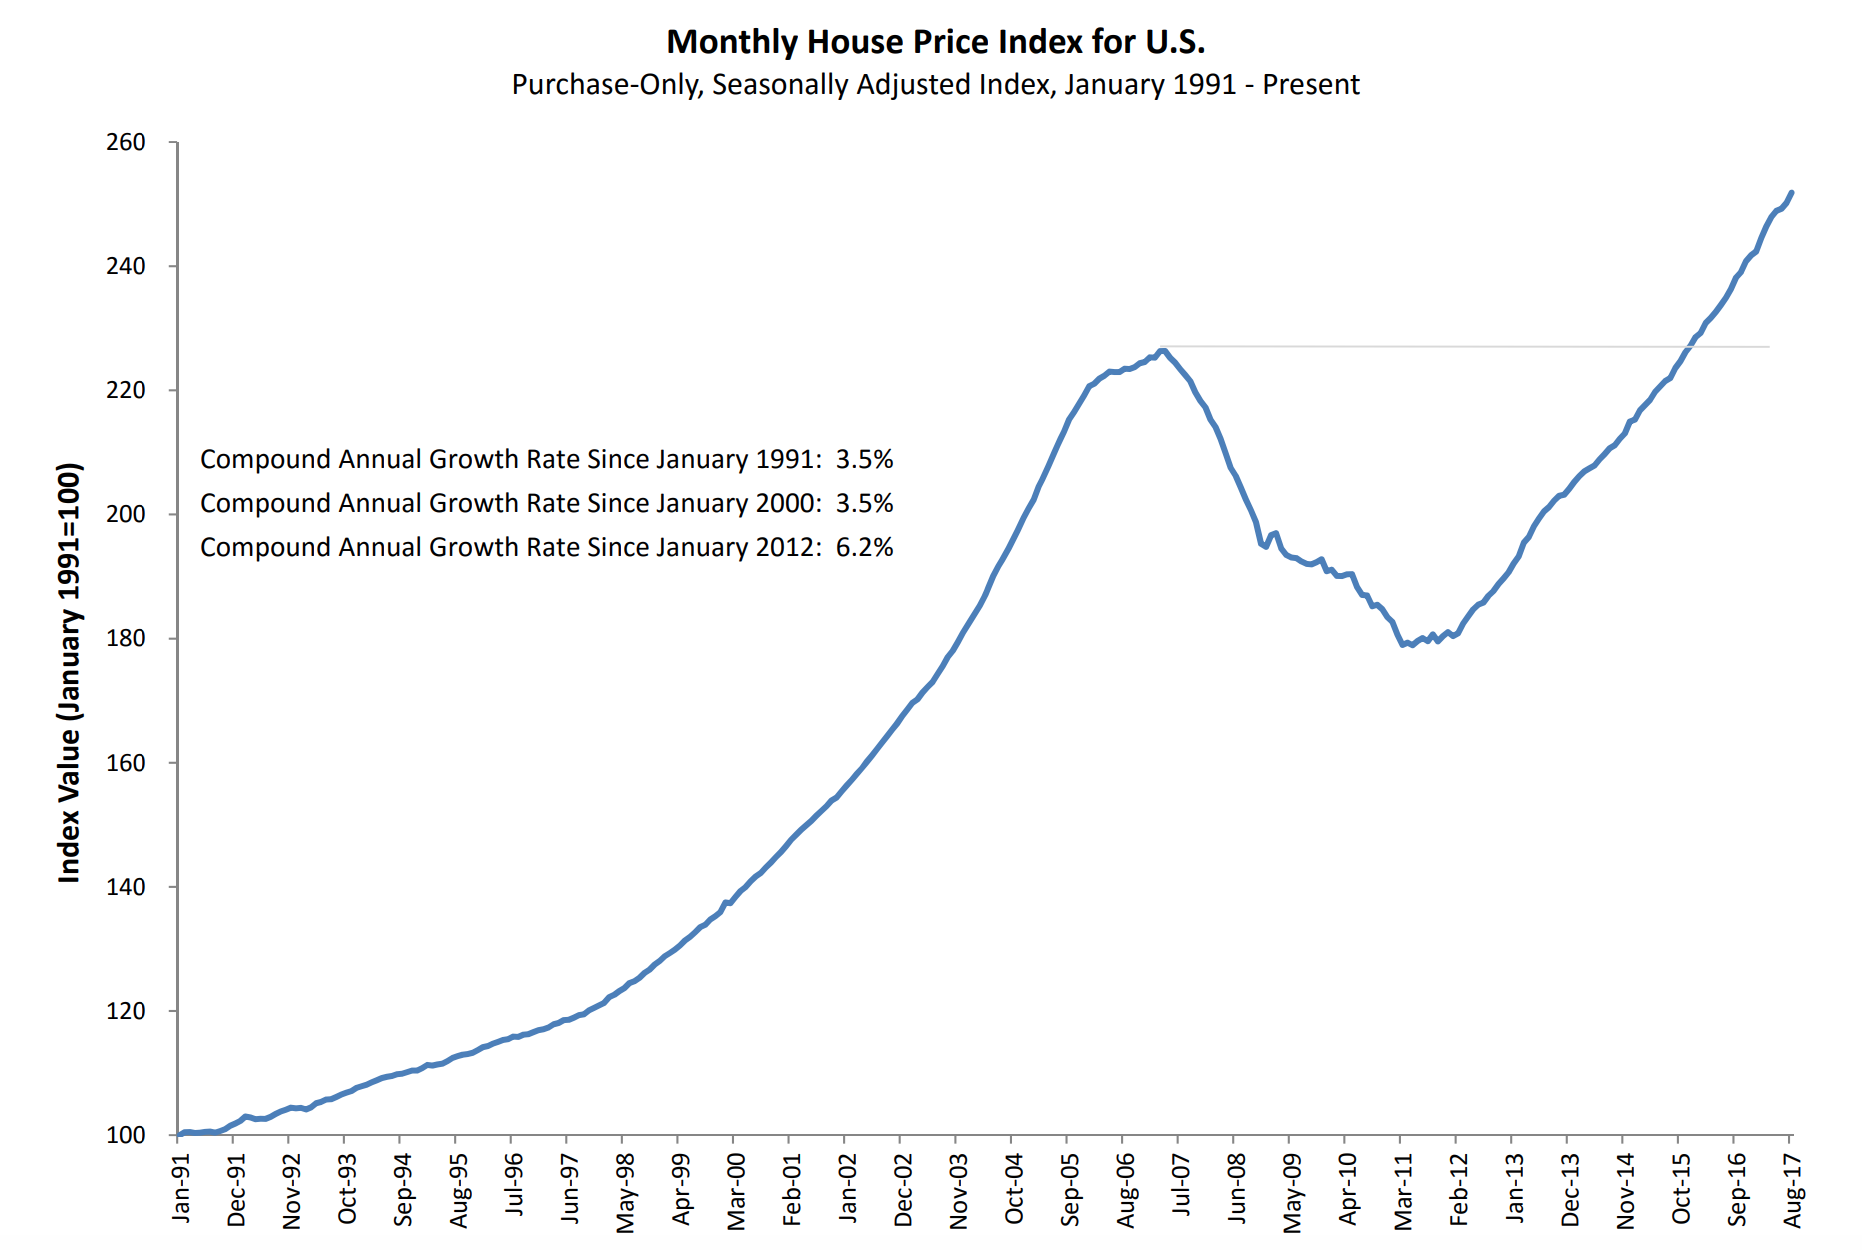 Home prices pick up speed in August